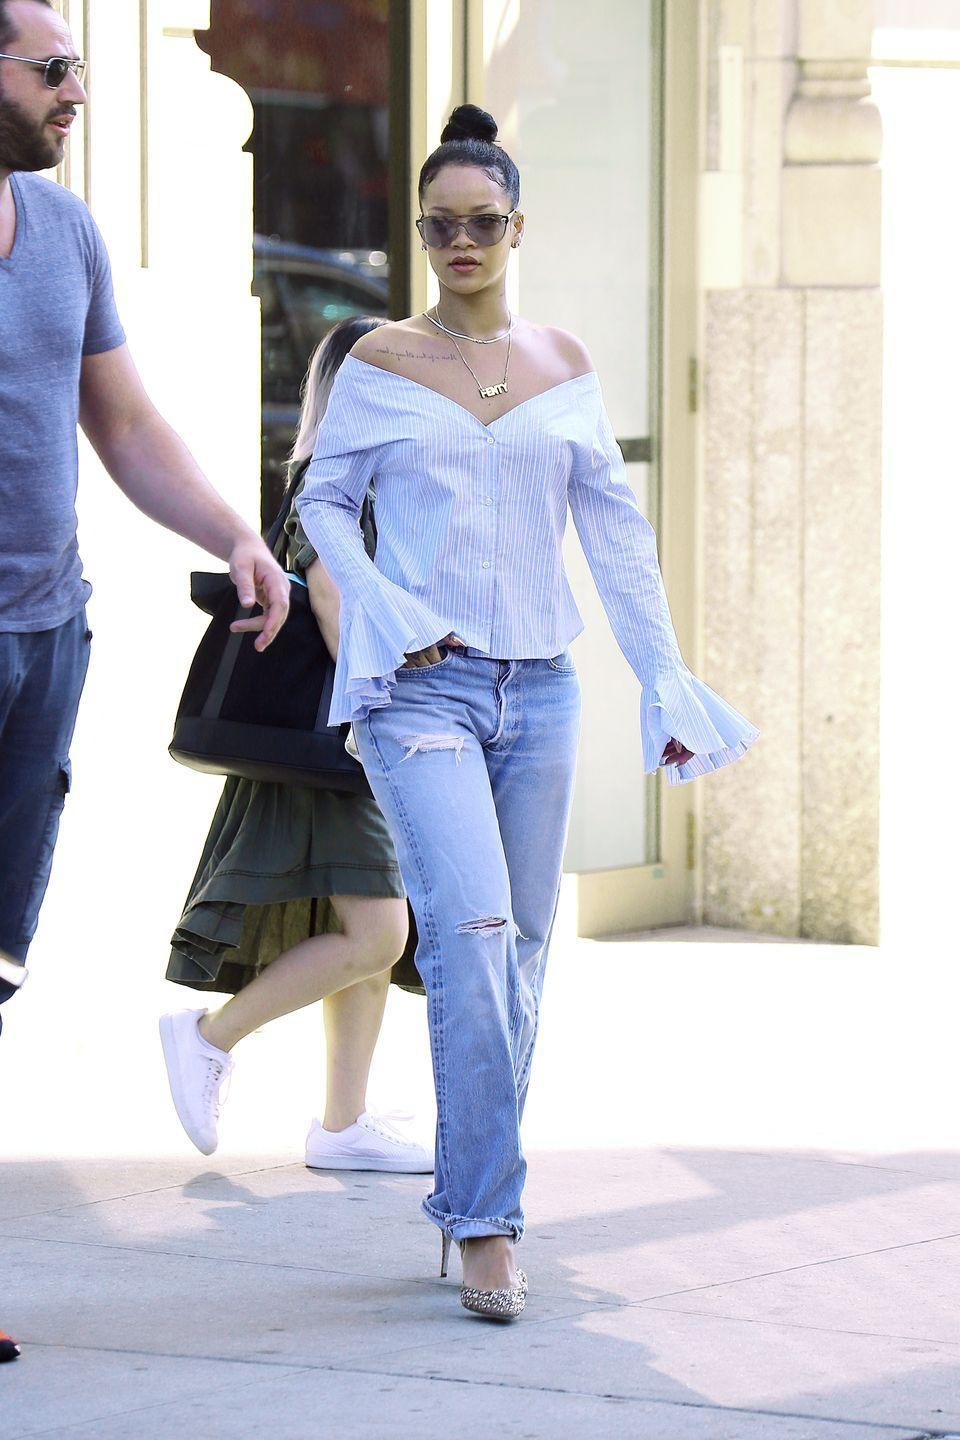 <p>Rihanna got super comfortable in slouchy boyfriend jeans, Rene Caovilla heels and an off-the-shoulder top on her way to VMA rehearsals in NYC.</p>